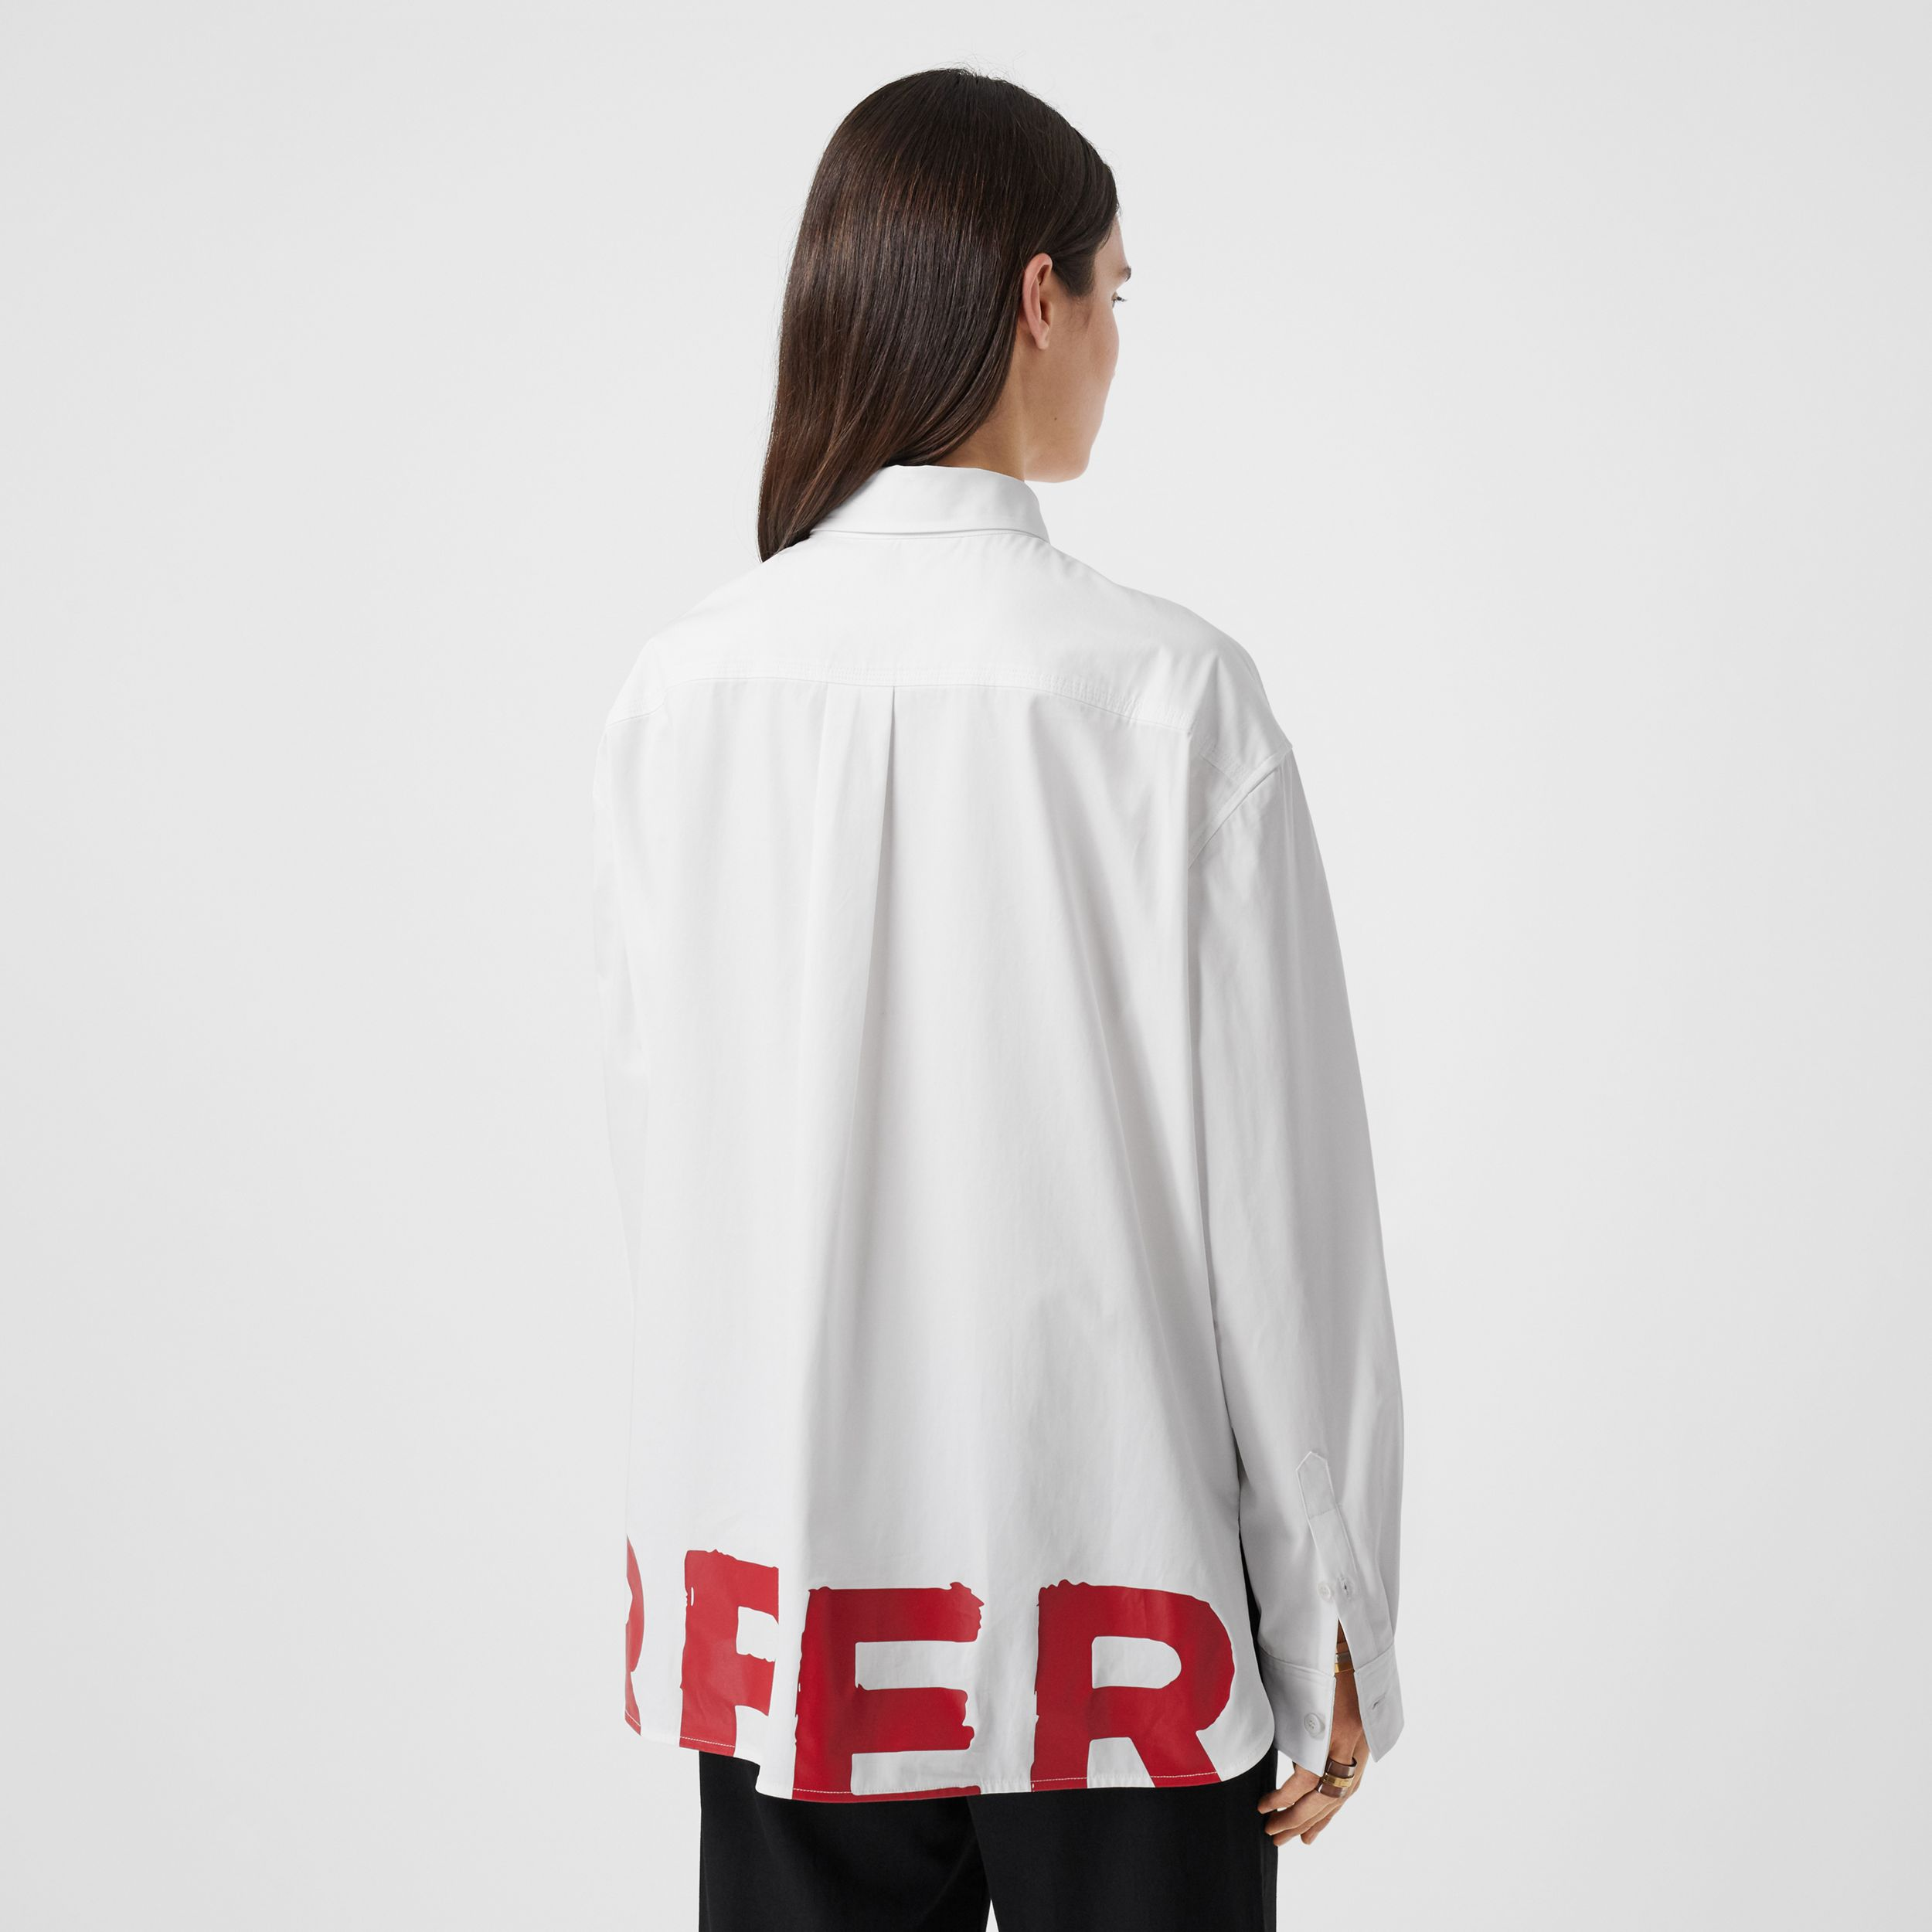 Logo Print Cotton Oversized Shirt in White - Women | Burberry Hong Kong S.A.R. - 3